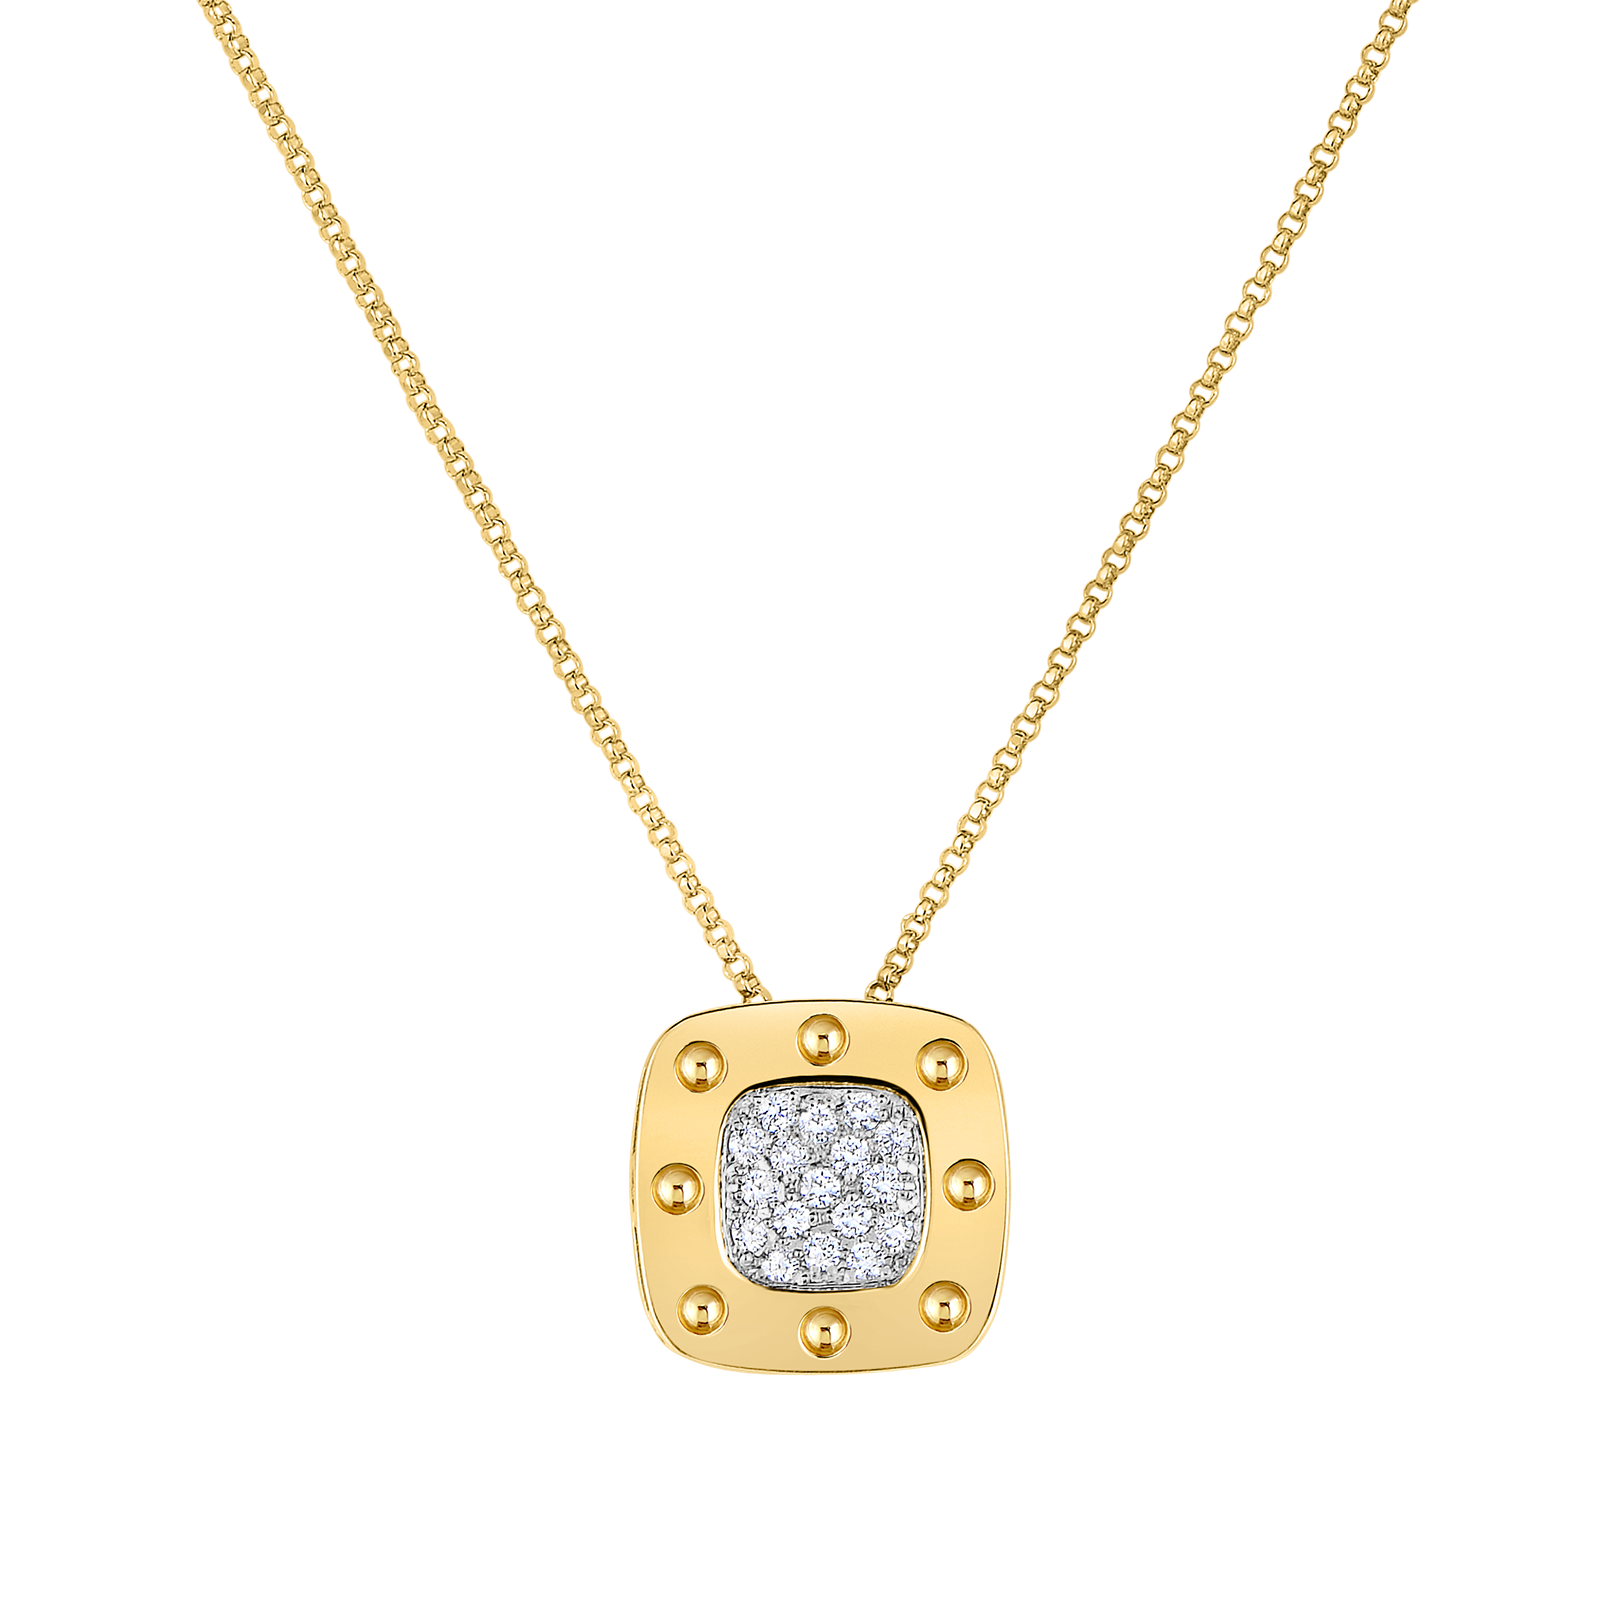 levy pin white necklace diamond bony pendant yellow square gold dual strand